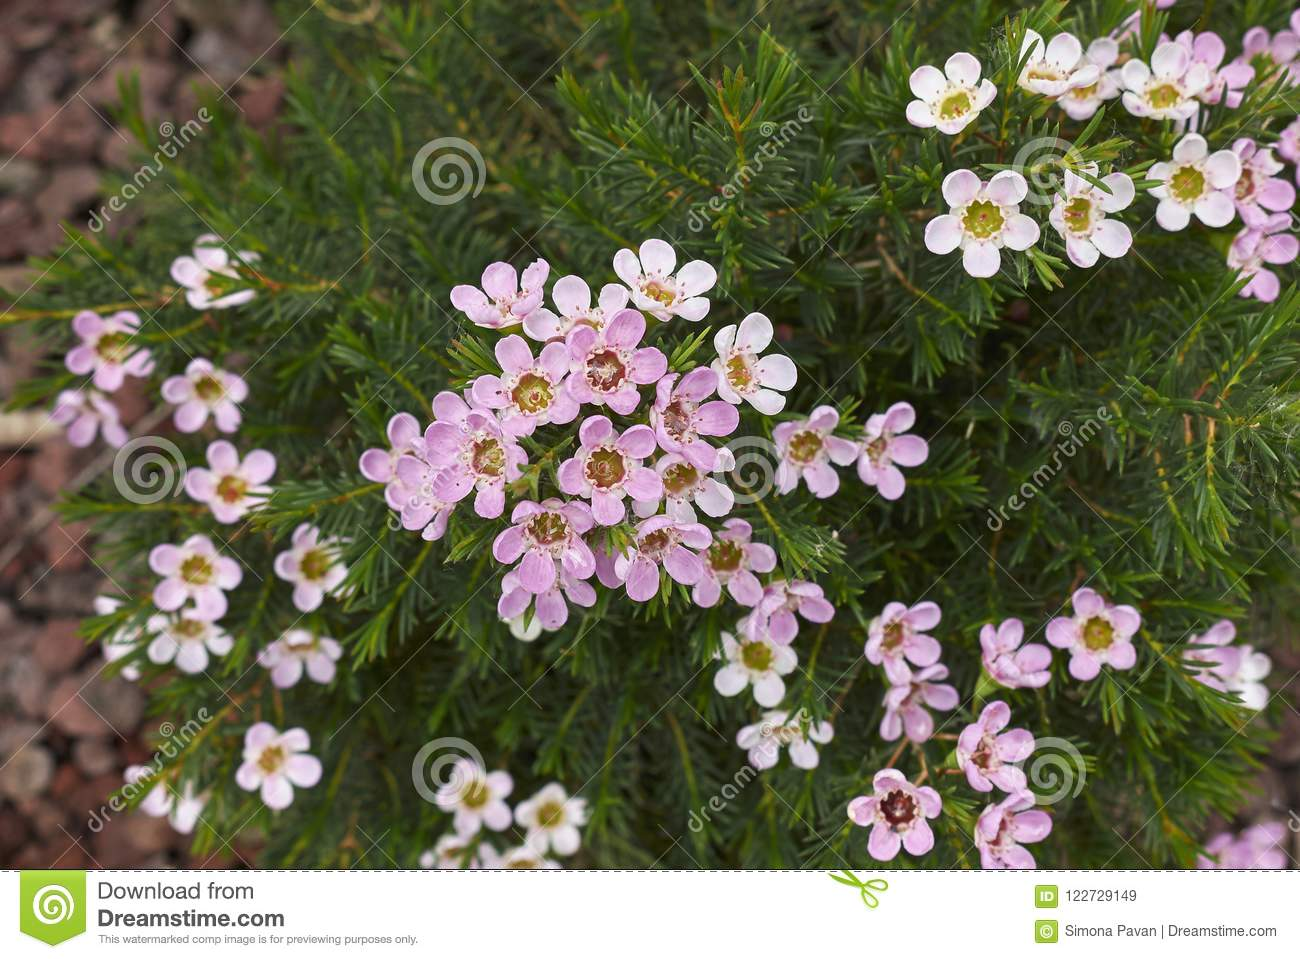 Pink And White Flowers Of Chamelaucium Uncinatum Plant Stock Image